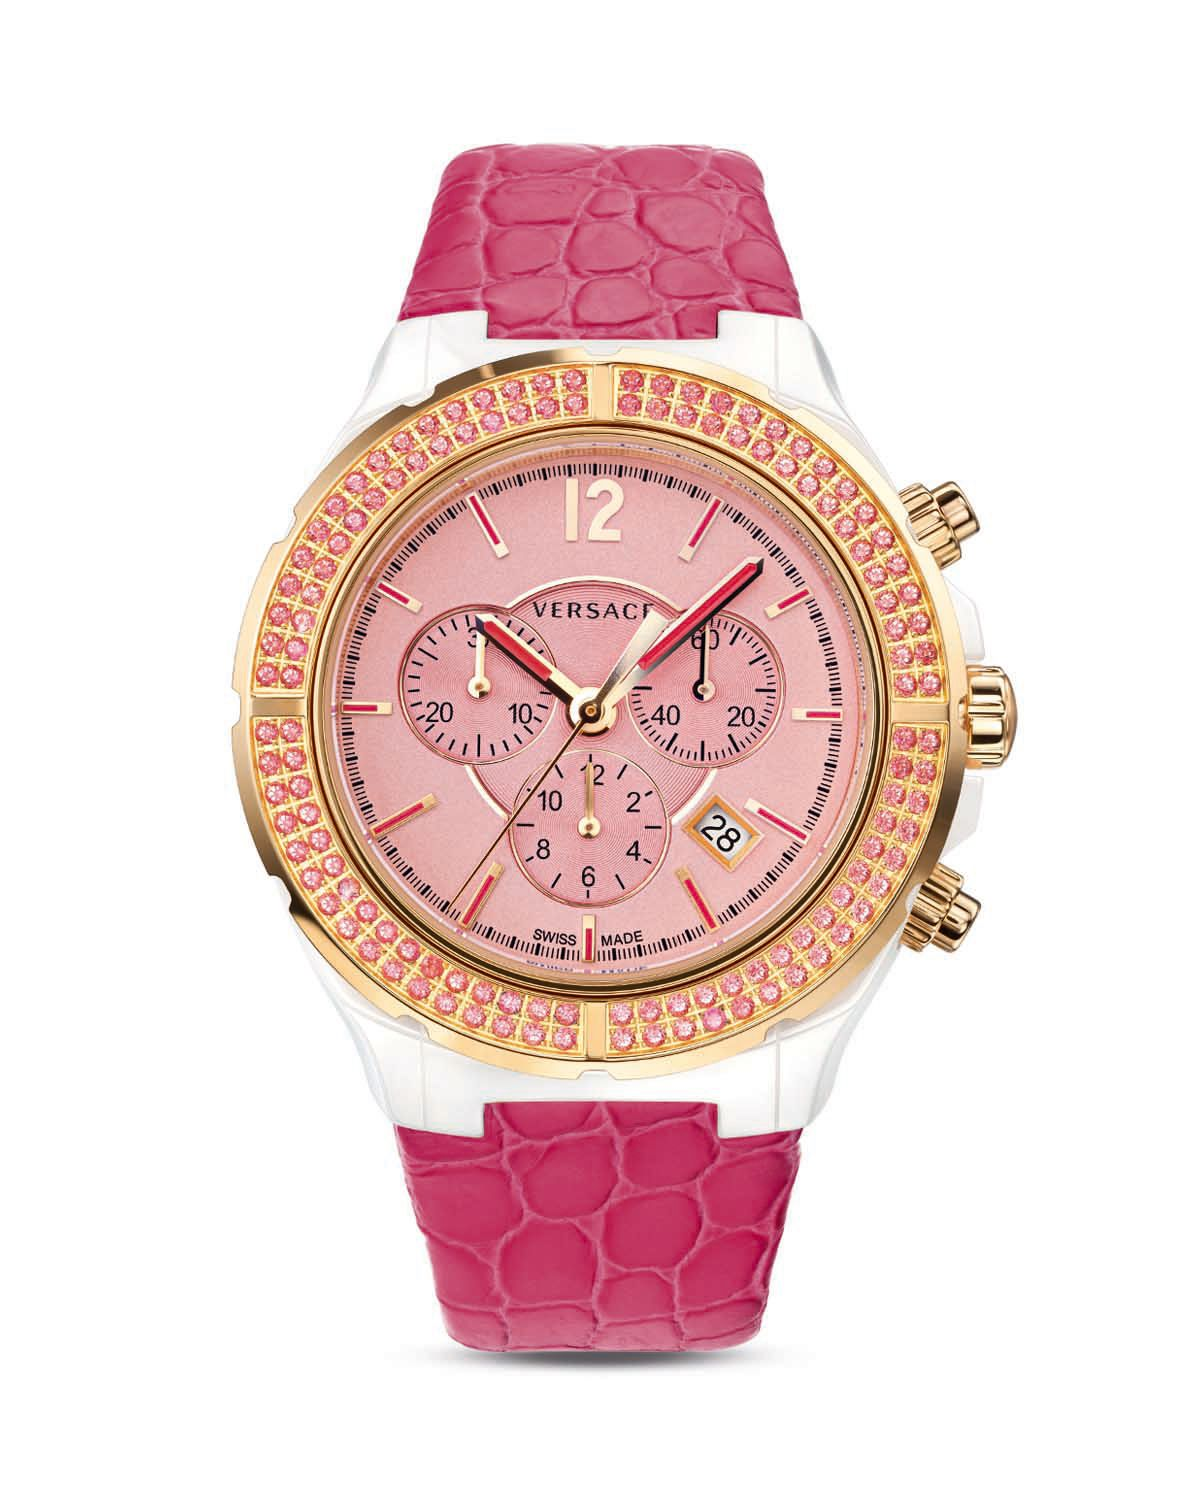 Versace Womens Dv One Cruise Watch 435mm In Pink White